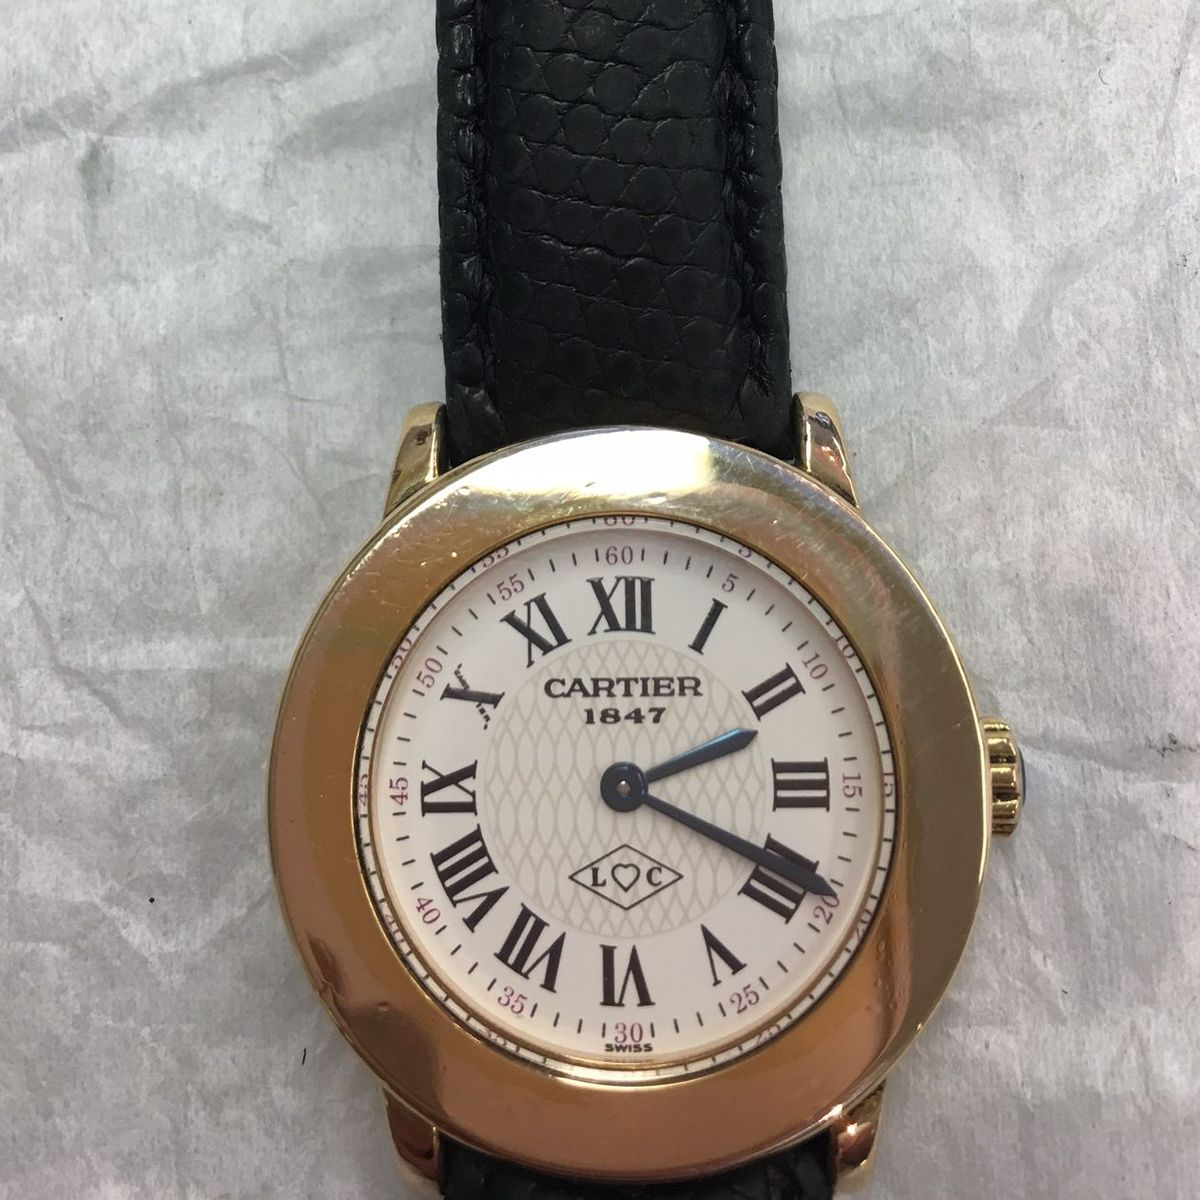 We are Cartier watch repair watchmakers and we can repair your watch!